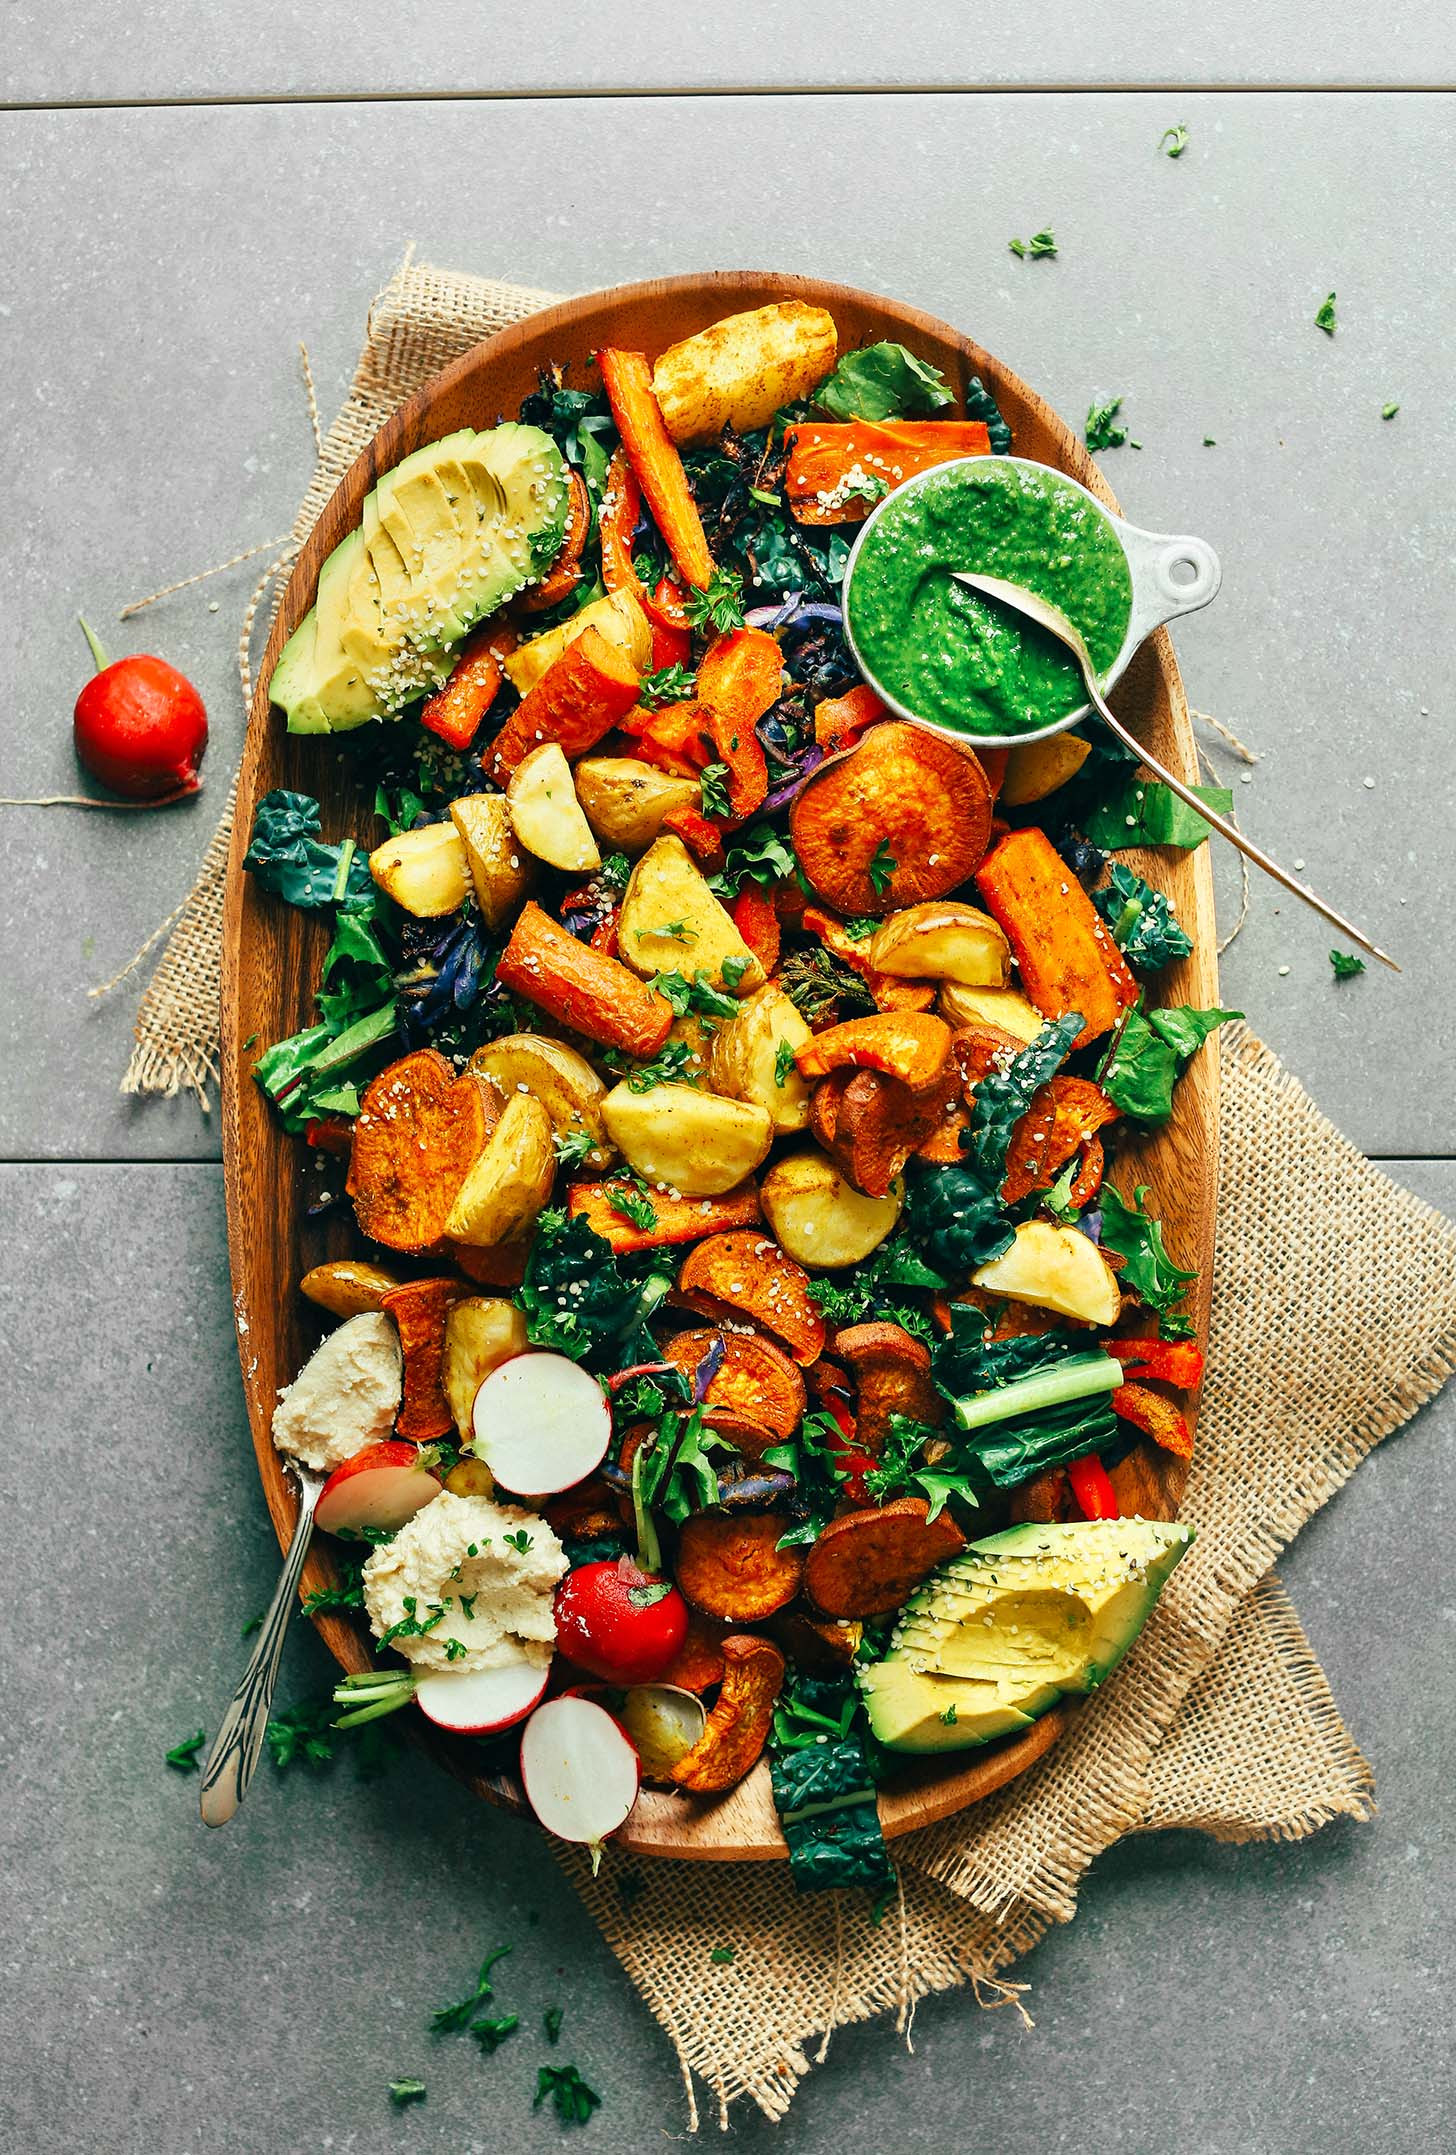 Healthy Vegan Salads  Roasted Ve able Salad with Chimichurri